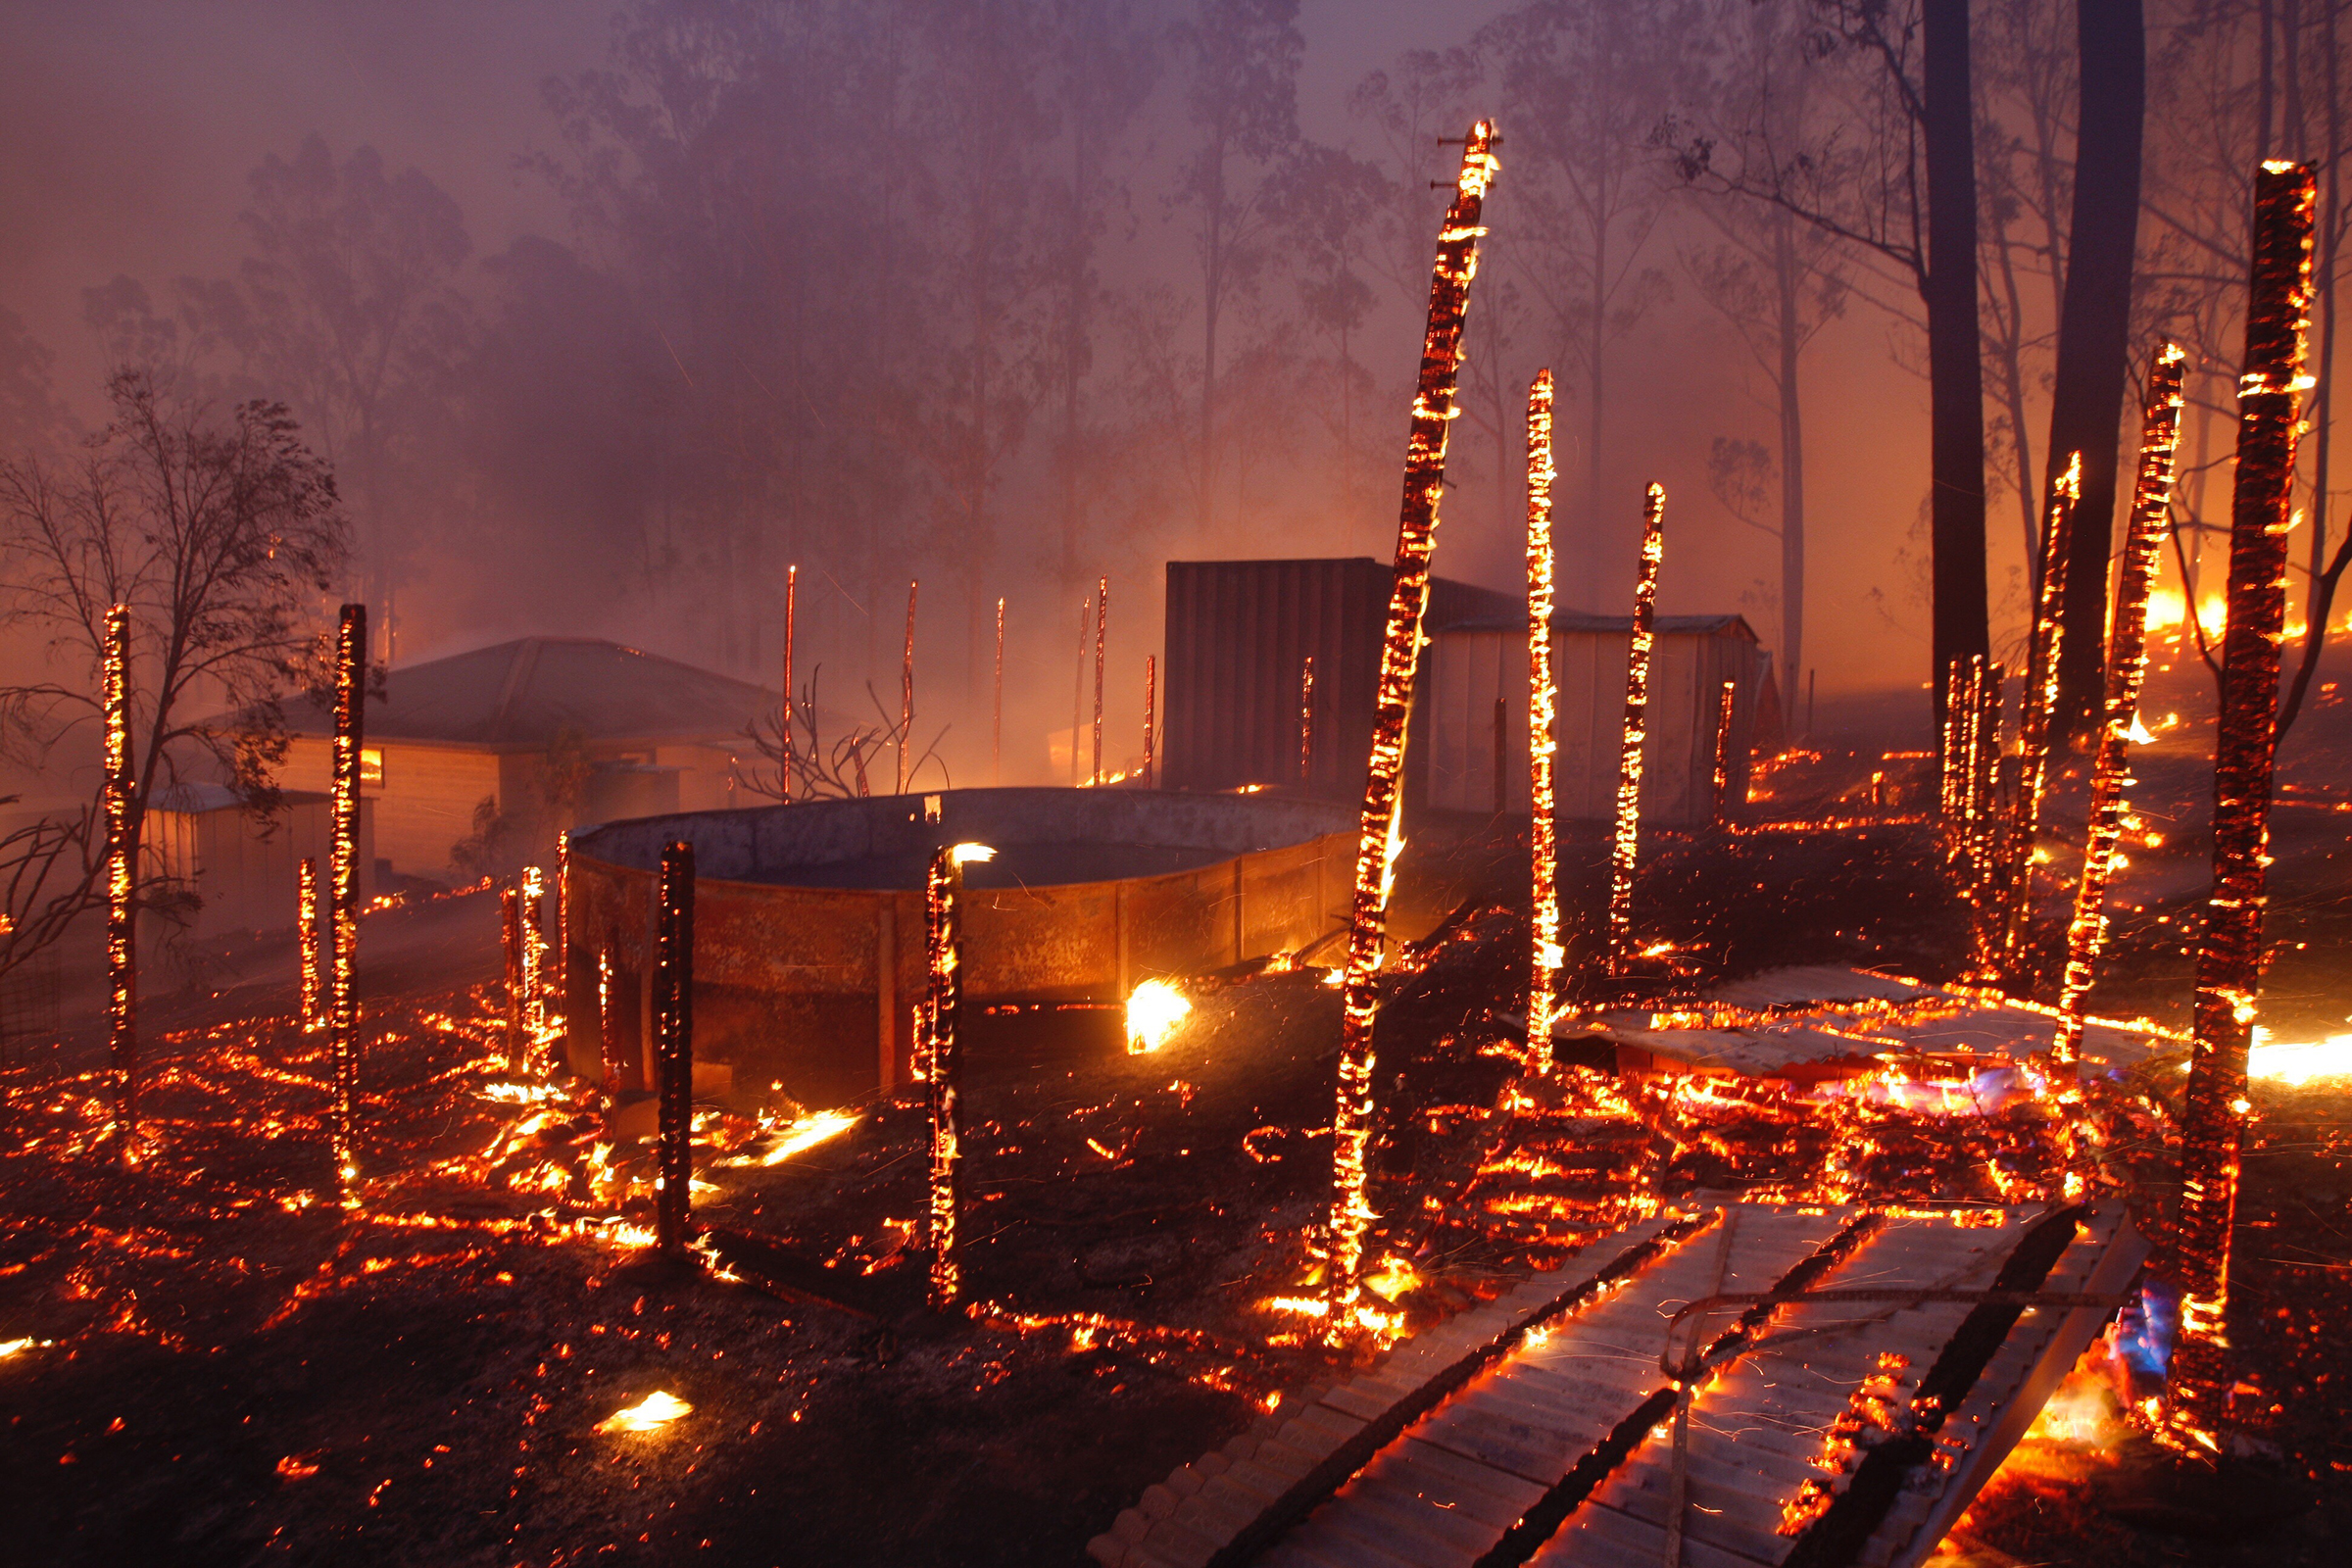 A bushfire burns through properties in the township of Rainbow Flat, New South Wales, on Nov. 9, 2019.